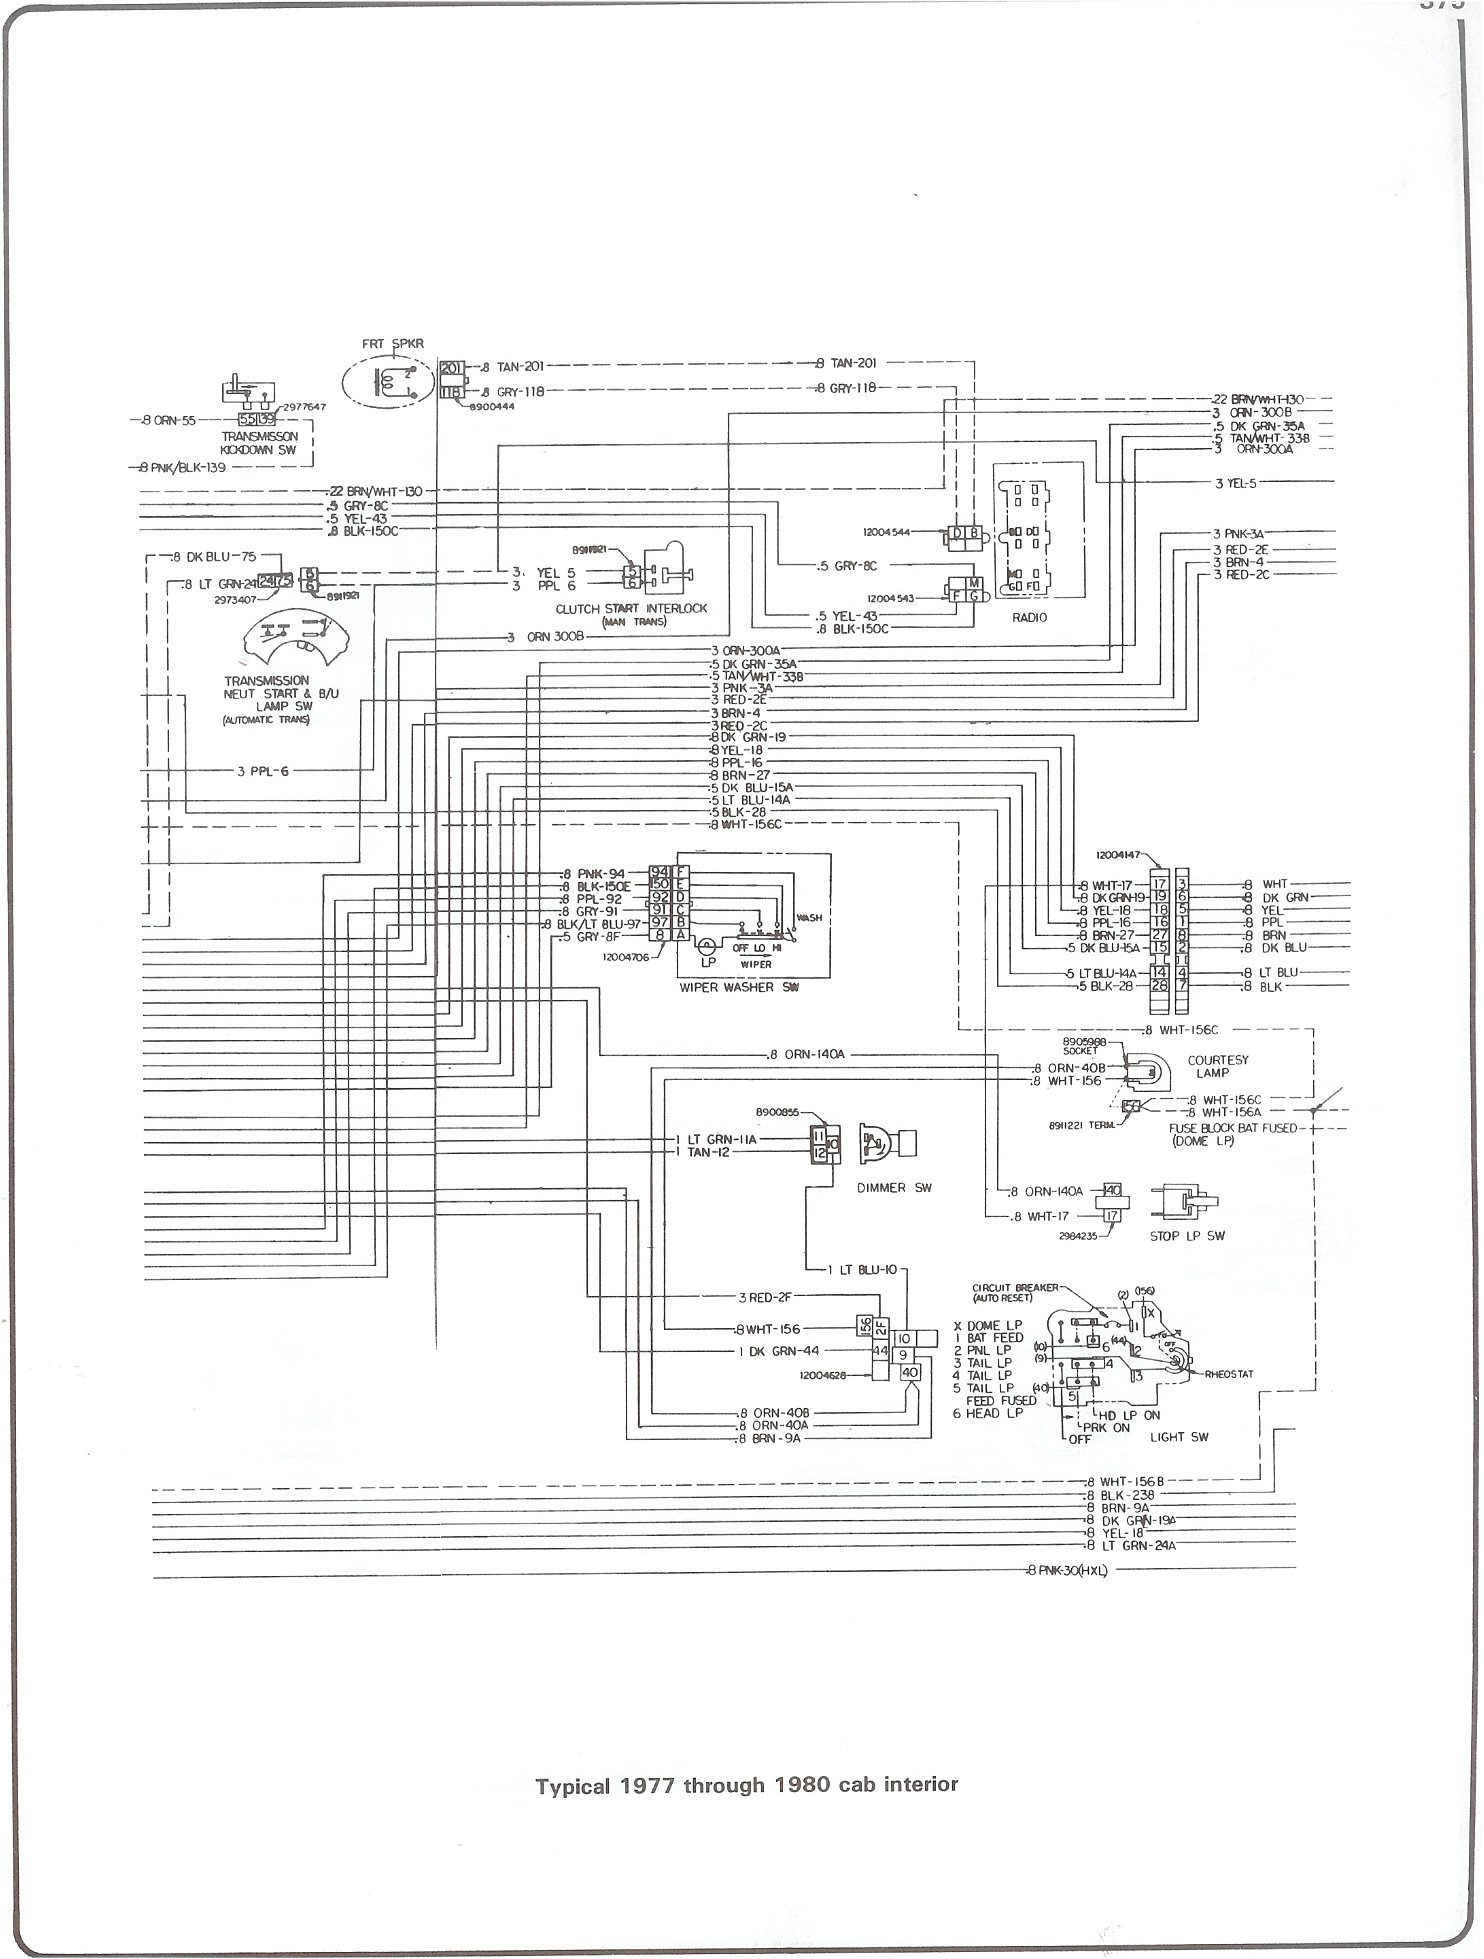 1986 Chevy Truck Engine Bay Wiring Diagram. Catalog. Auto